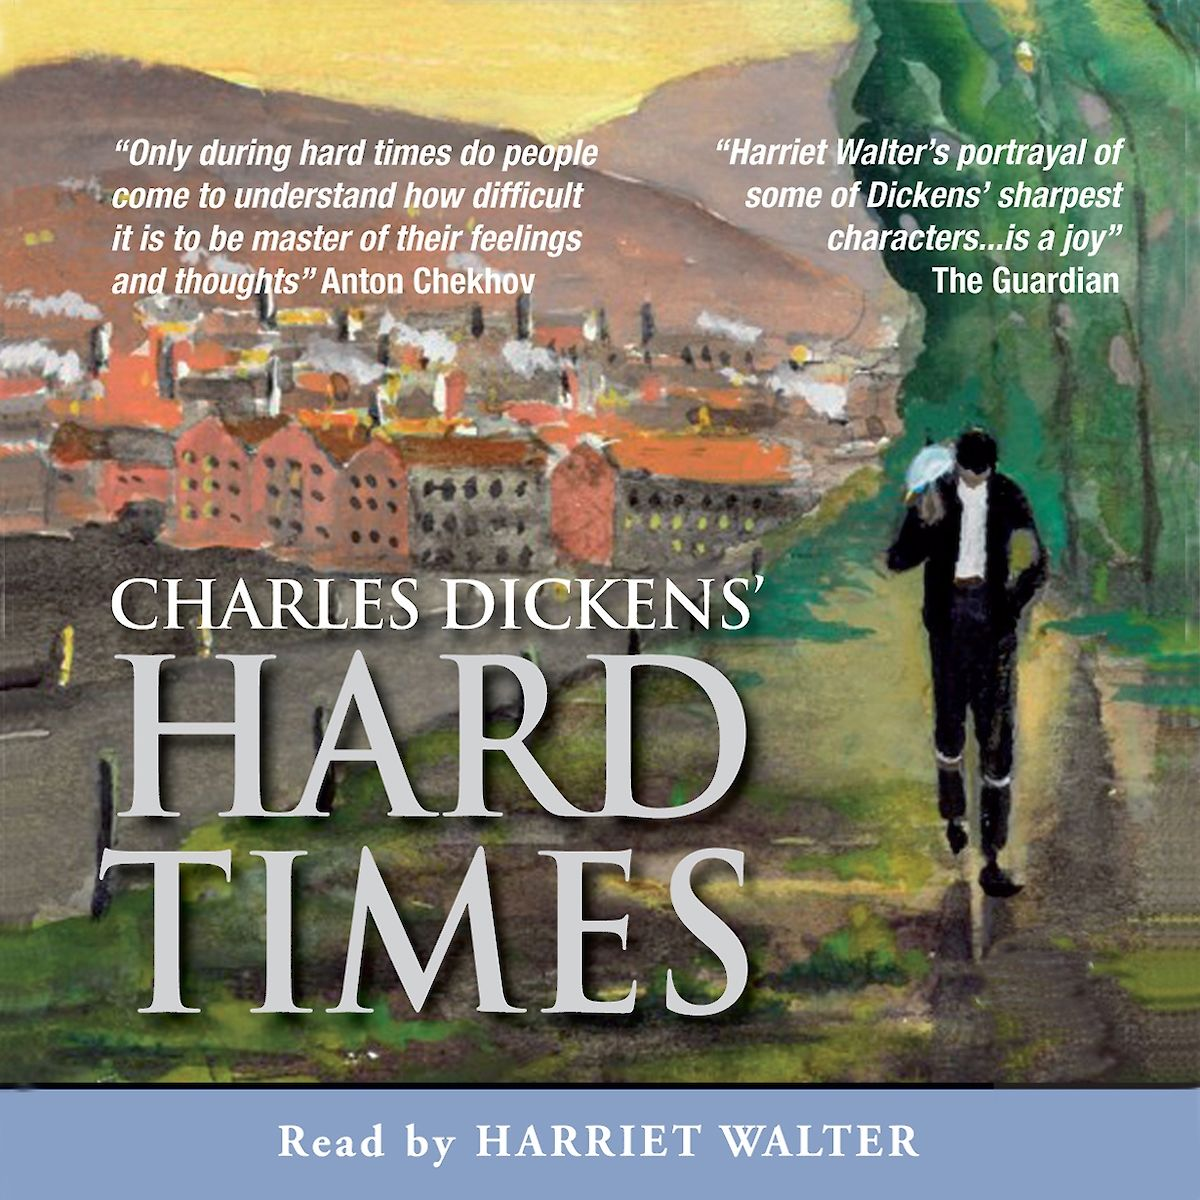 an overview of the many aspects of charles dickenss story hard times Perhaps, they think the next part of the story is artificial however, they know that the audience expects there to be a satisfying doling out of rewards and punishments, so dickens does this kind of grumbling in some of his other novels, but hard times goes for a slightly different angle.